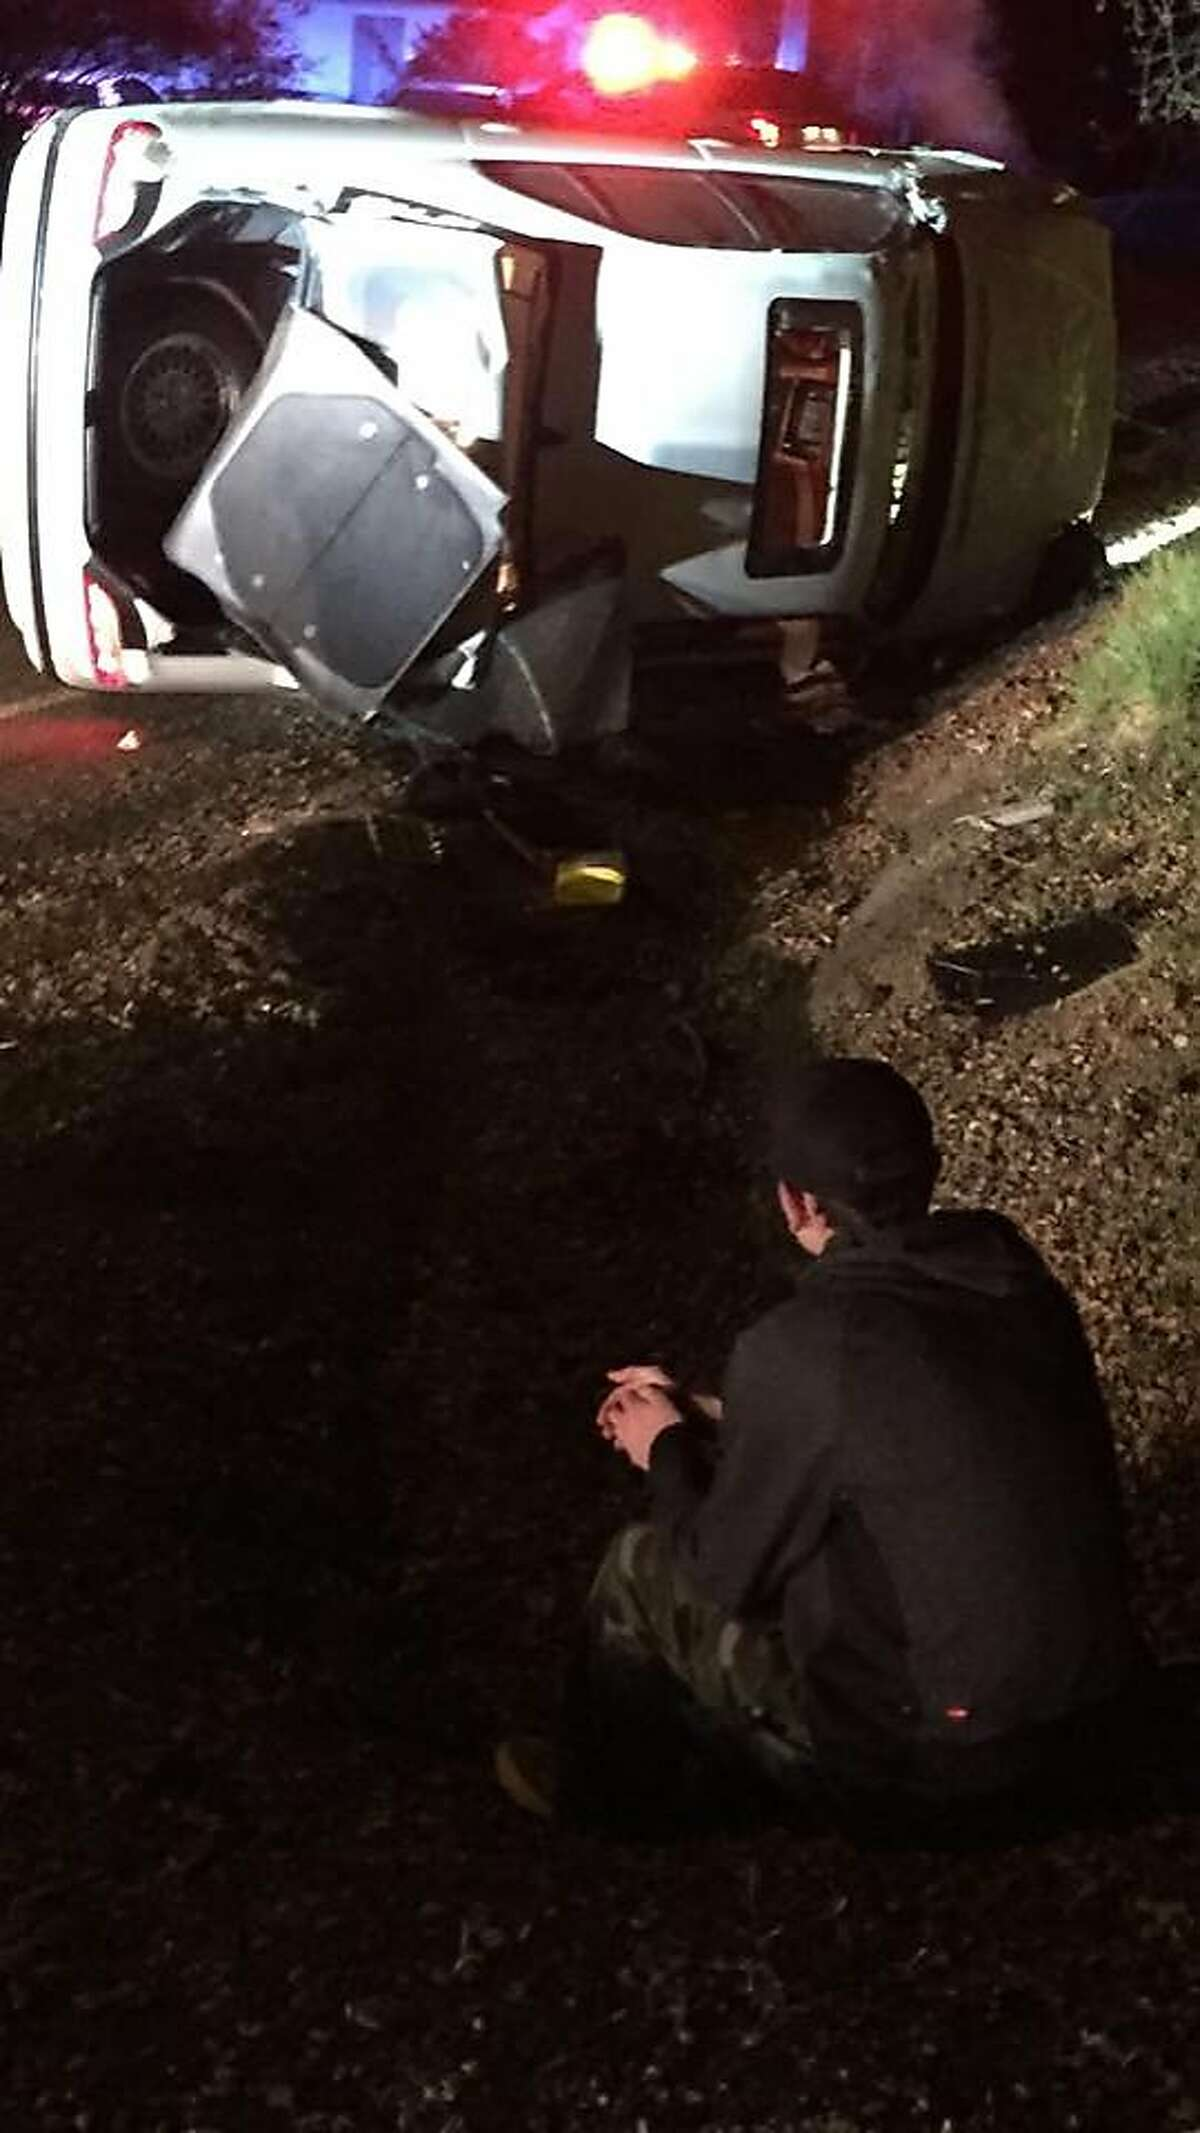 A car spun off the road into a ditch in Healdsburg early Friday morning.